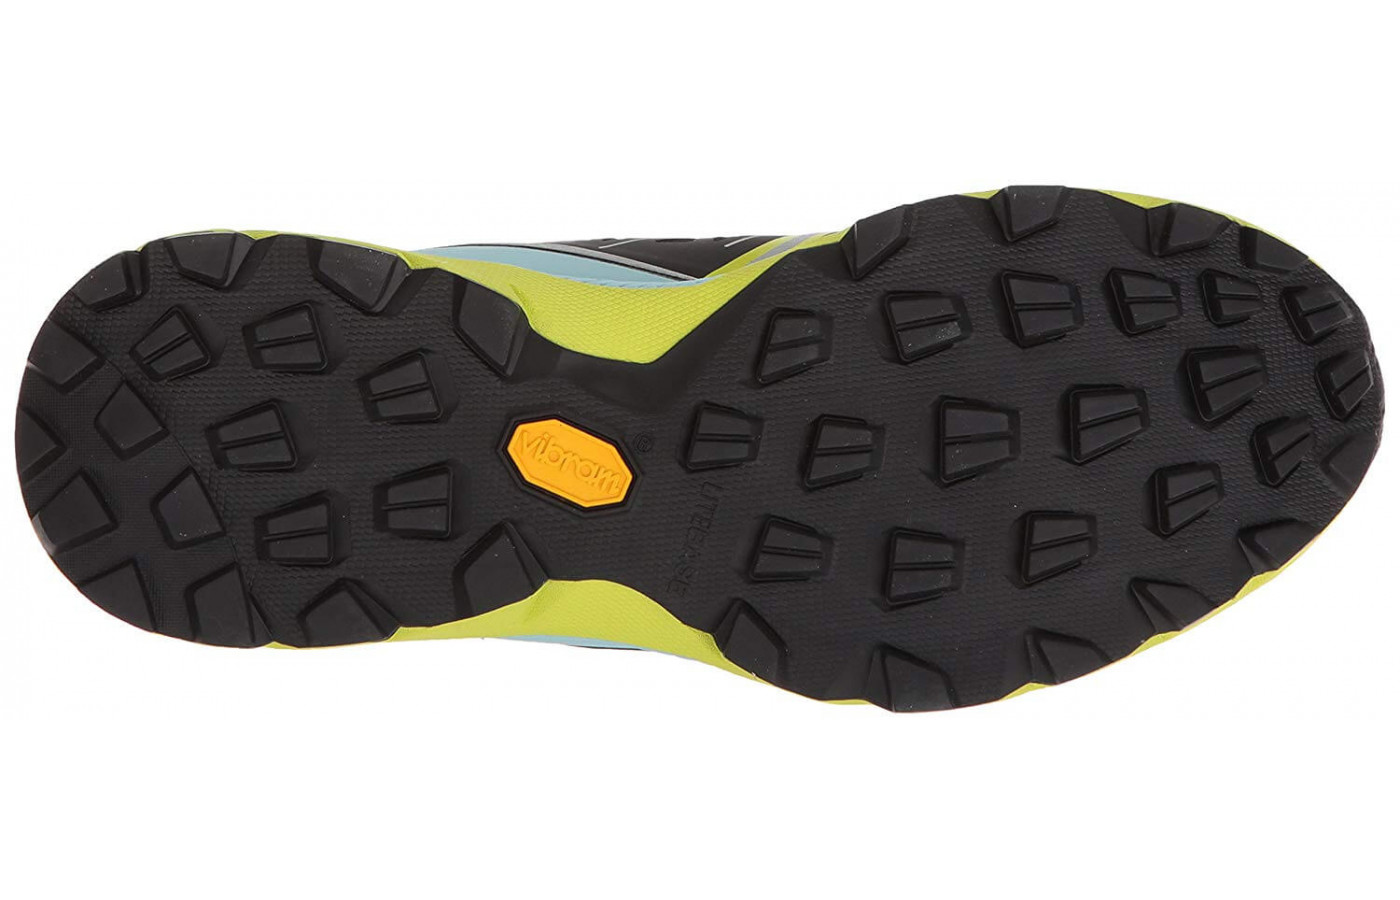 A Vibram outsole gives the Spin RS its incredible traction